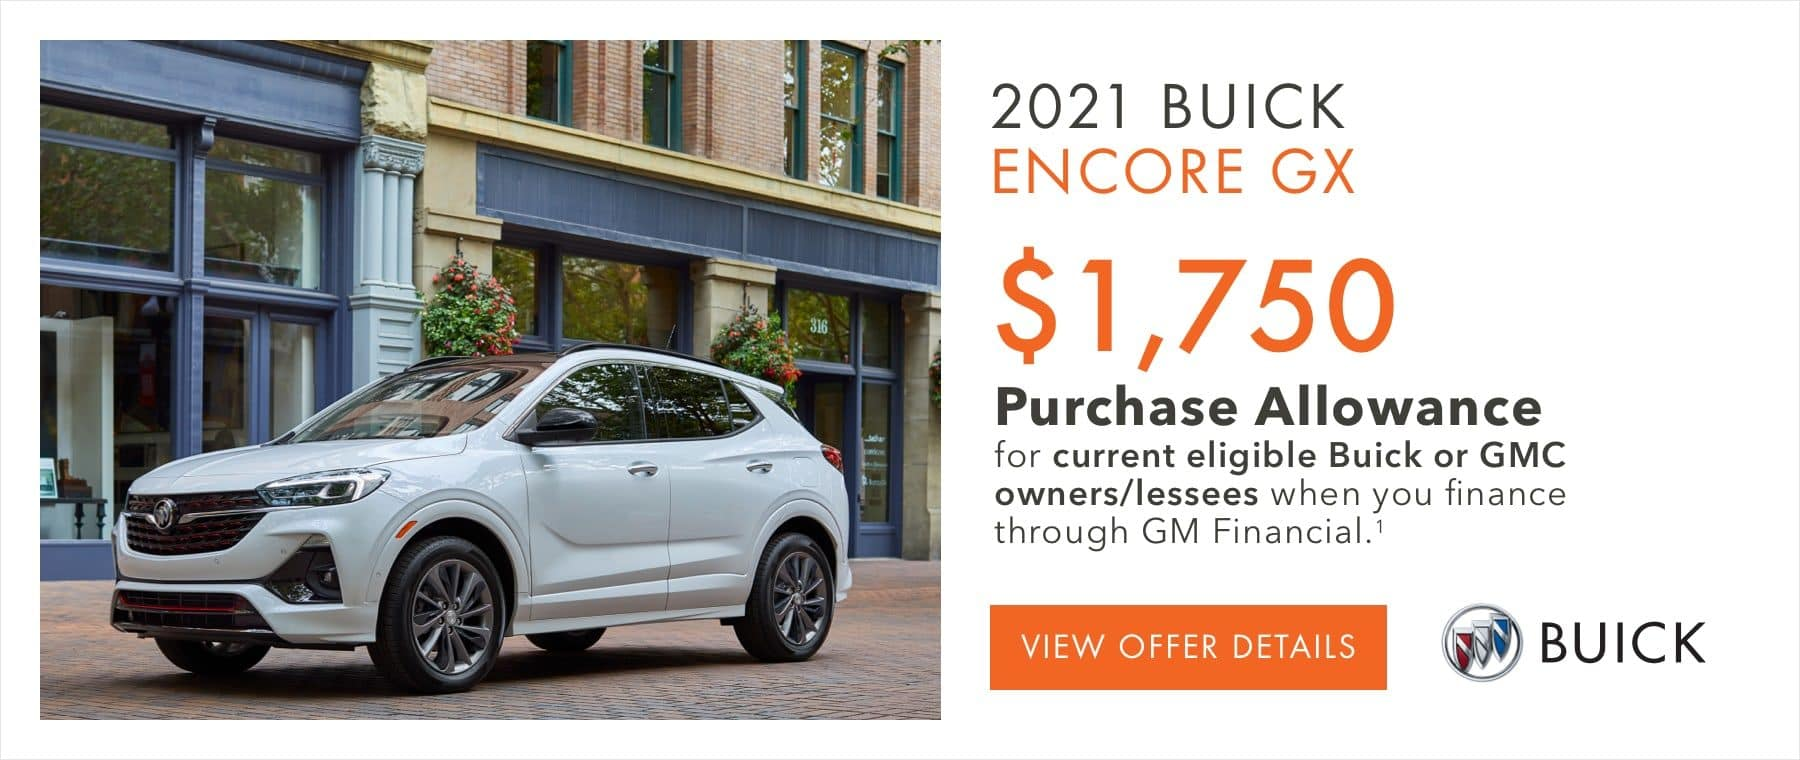 $1,750 Purchase Allowance for current eligible Buick or GMC owners/lessees when you finance through GM Financial.1